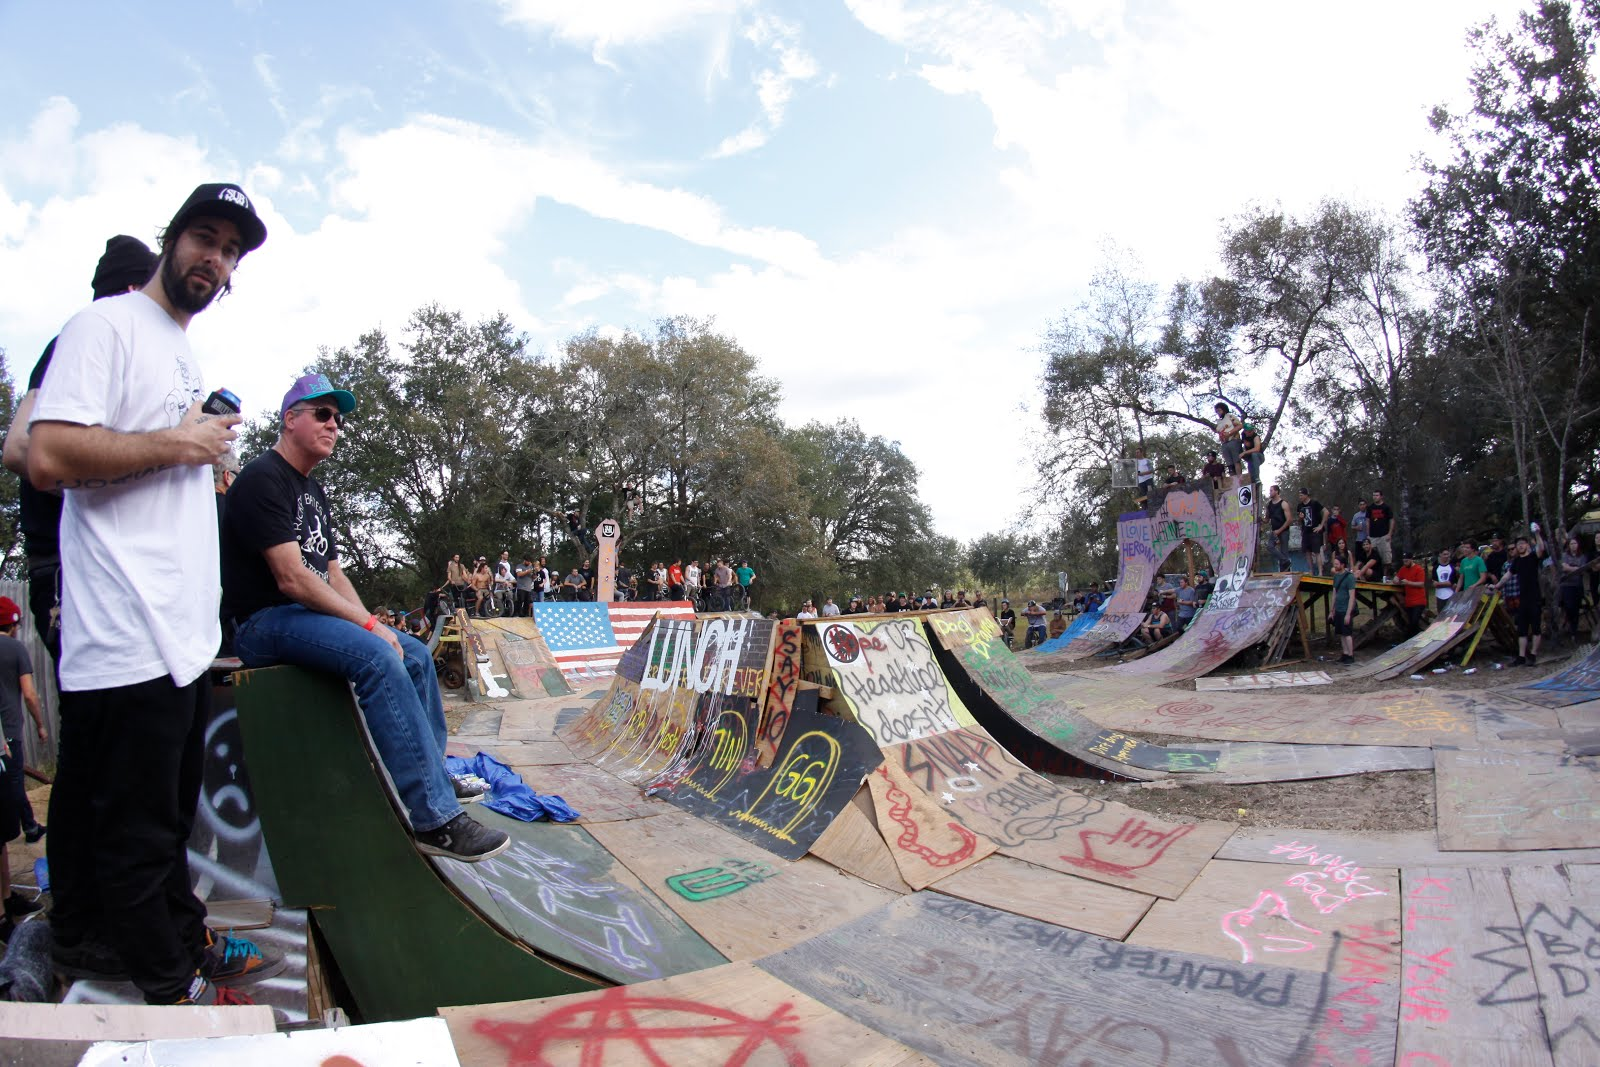 daily grind bmx and skate shop banned in the backyard weekend